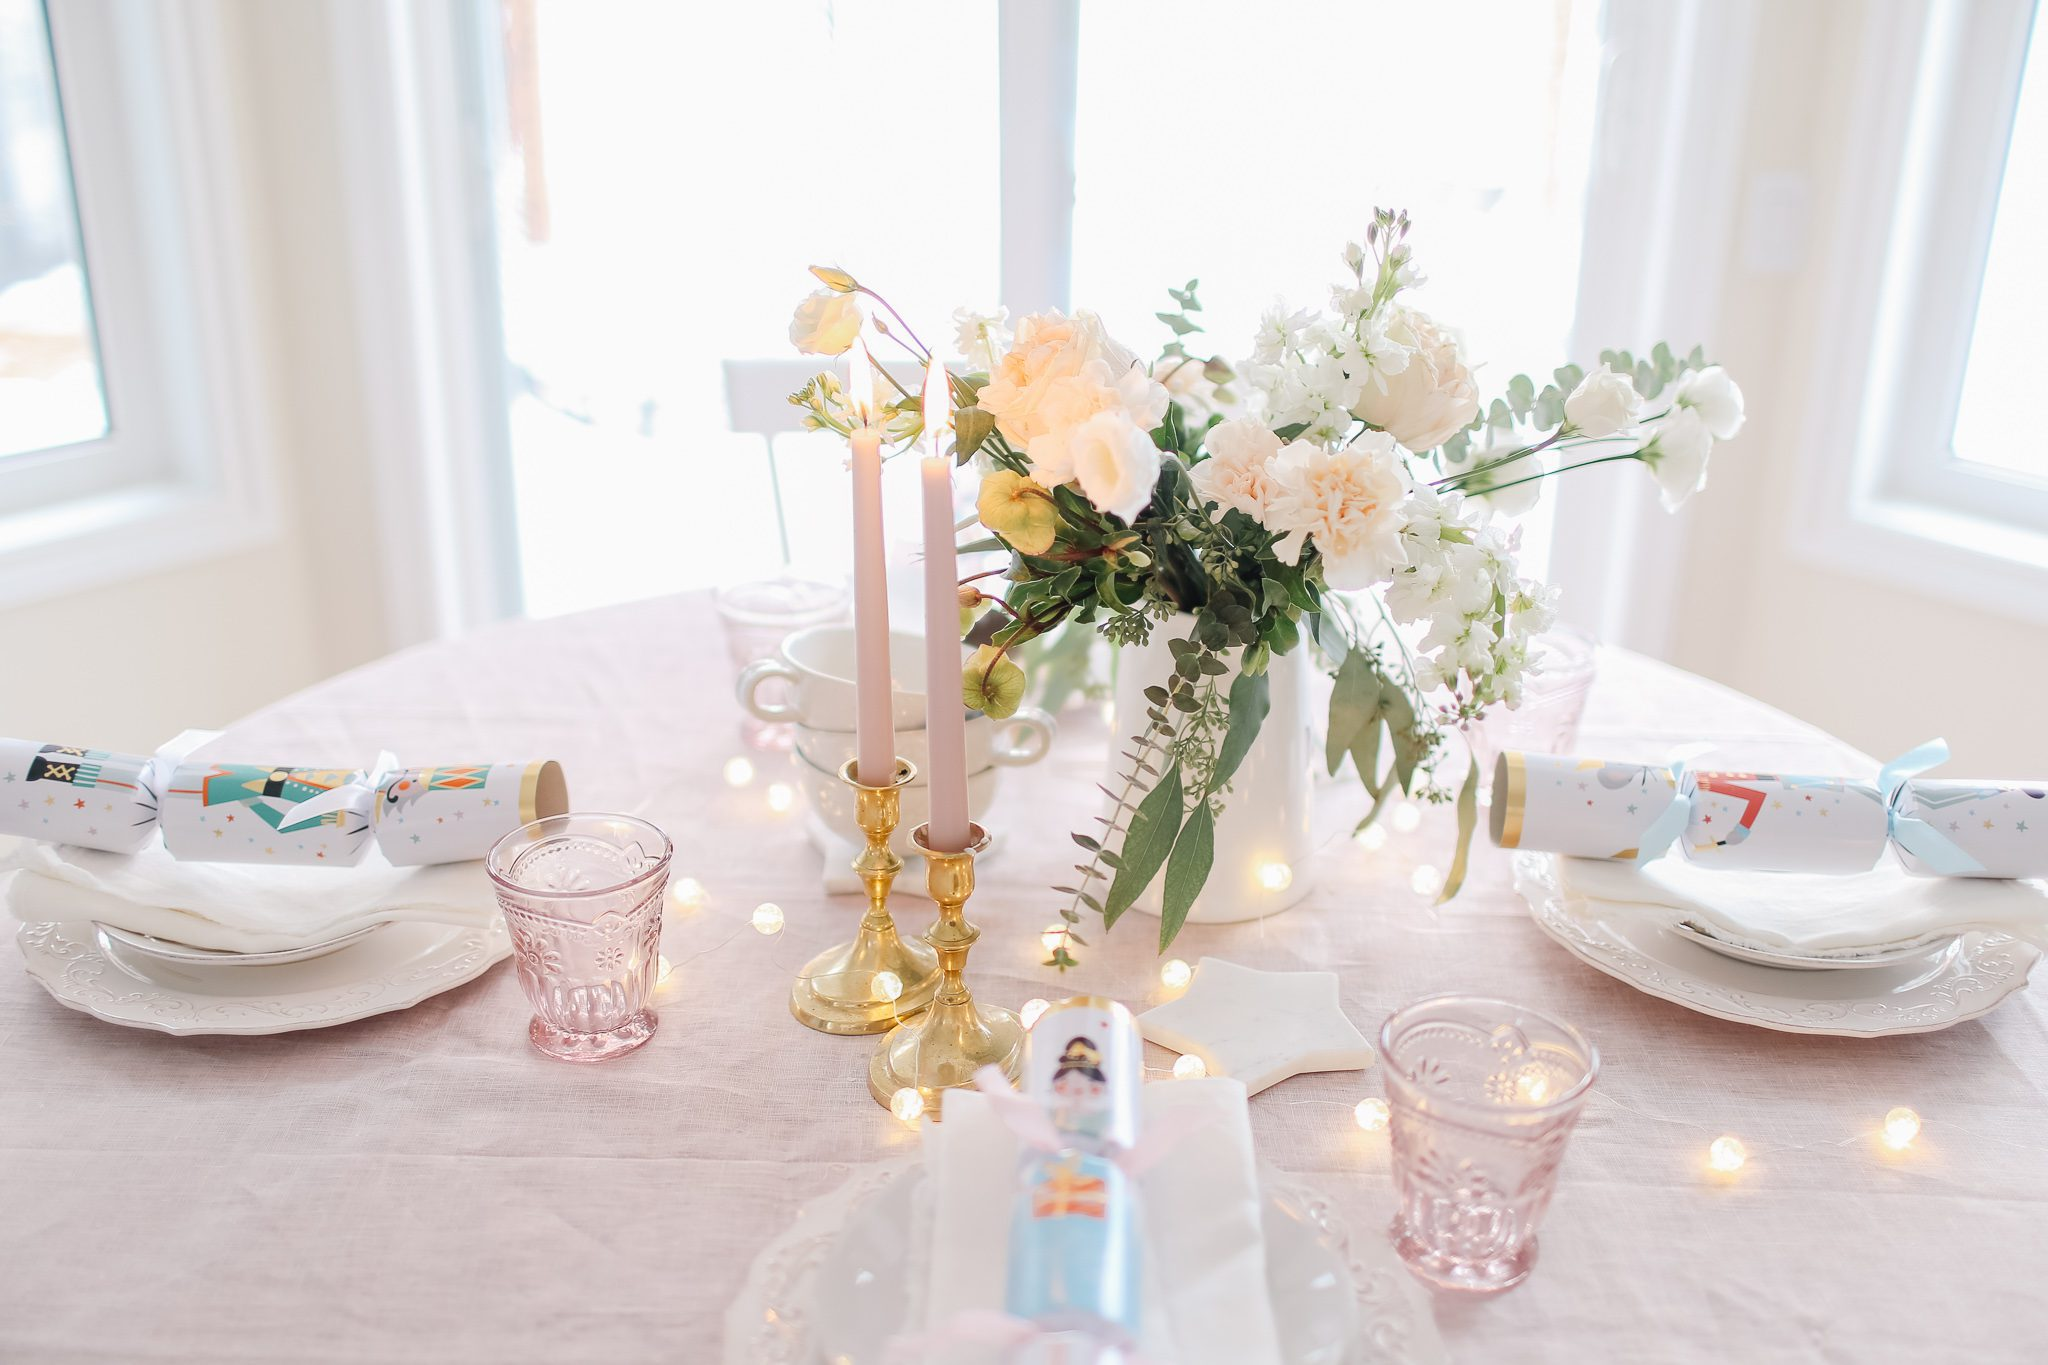 A vase of flowers on a table with fairly lights and candles